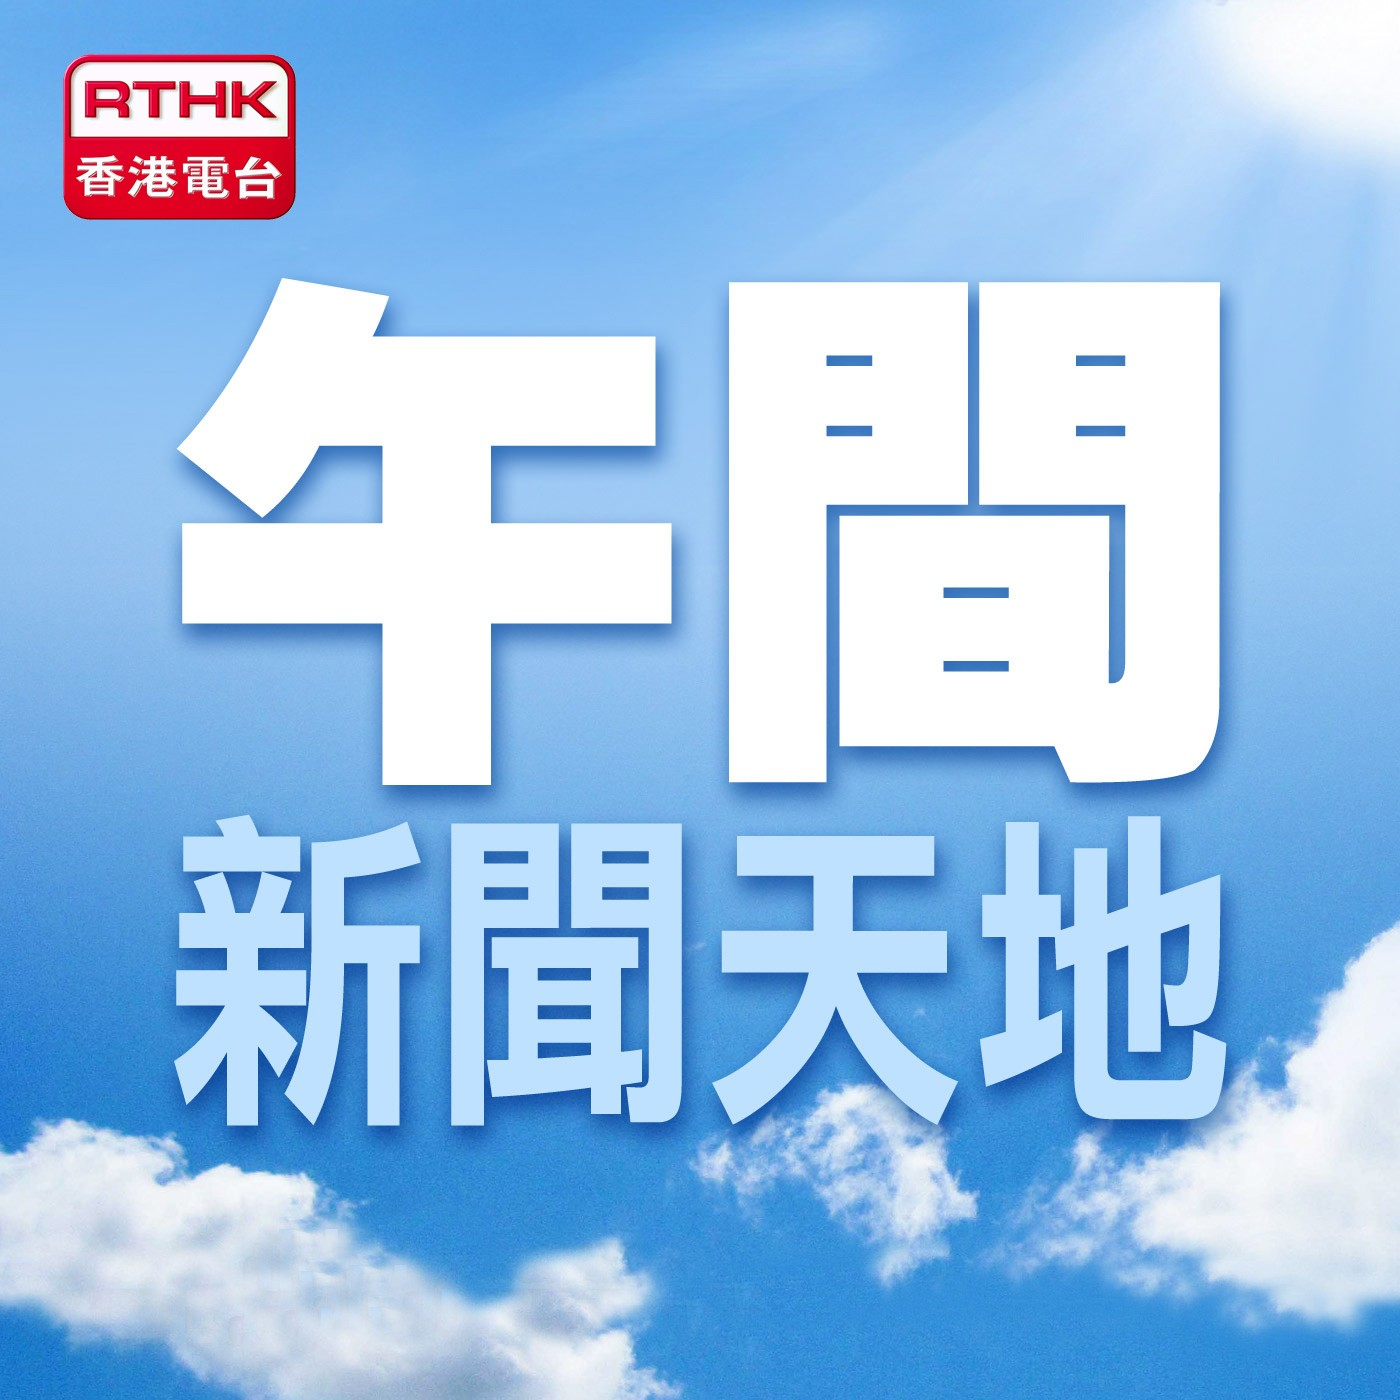 RTHK - All Podcasts - Chartable